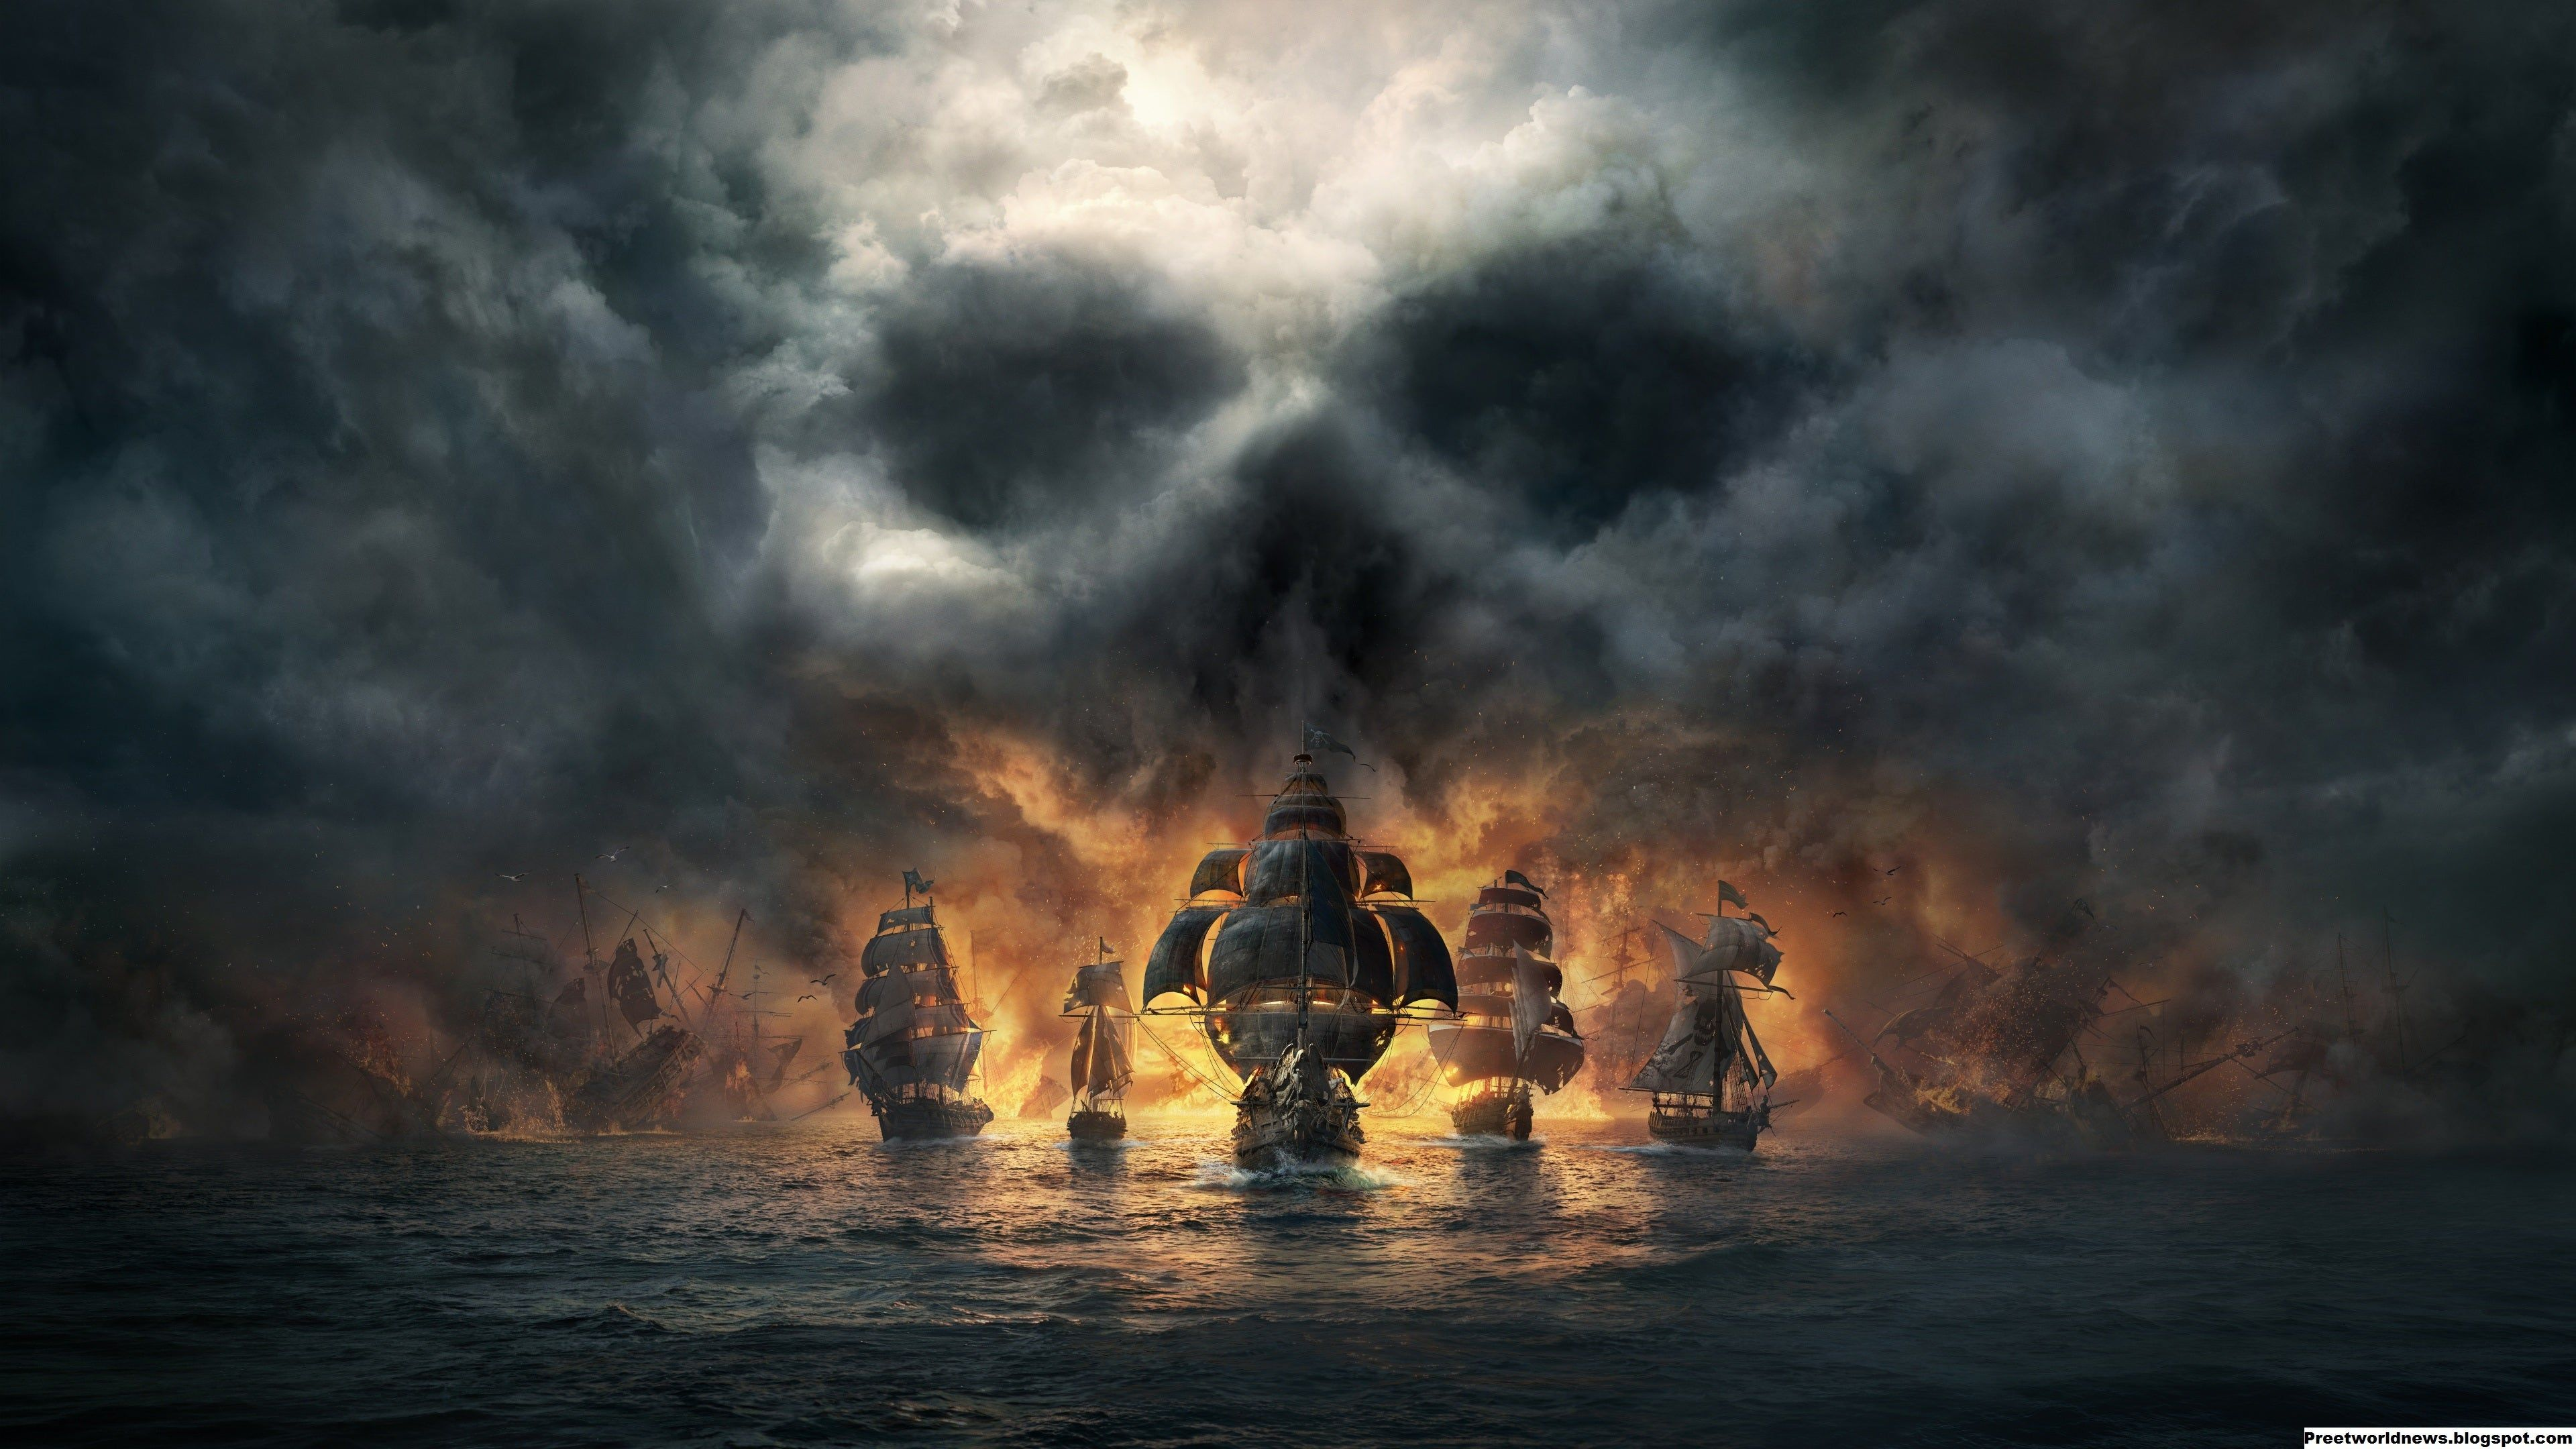 Skull And Bones Video Game 4k Wallpaper Hd Cool Wallpapers Gaming Wallpapers Best Gaming Wallpapers Ideas for gaming 4k resolution pc hd